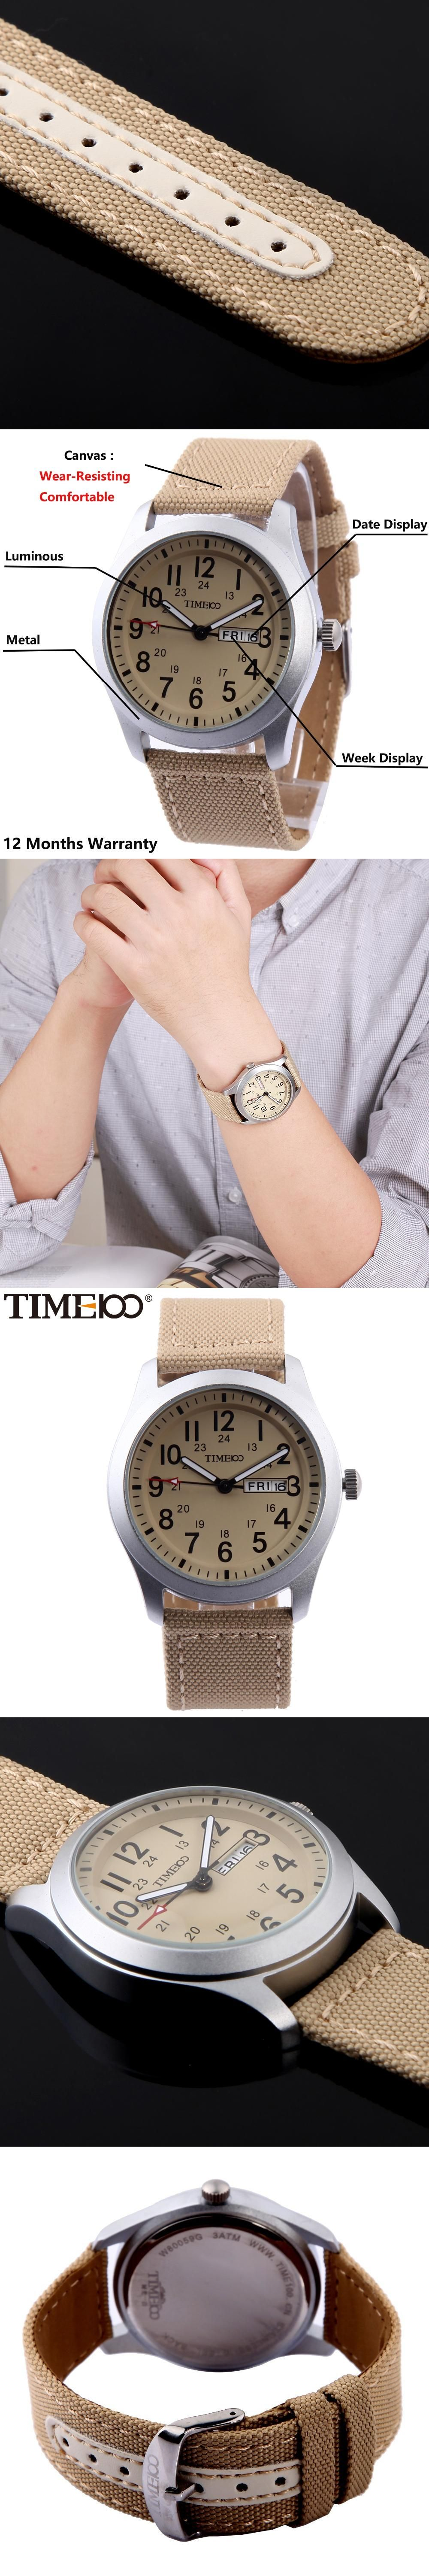 in rrl men lyst green canvas strap olive accessories watches gallery for watch